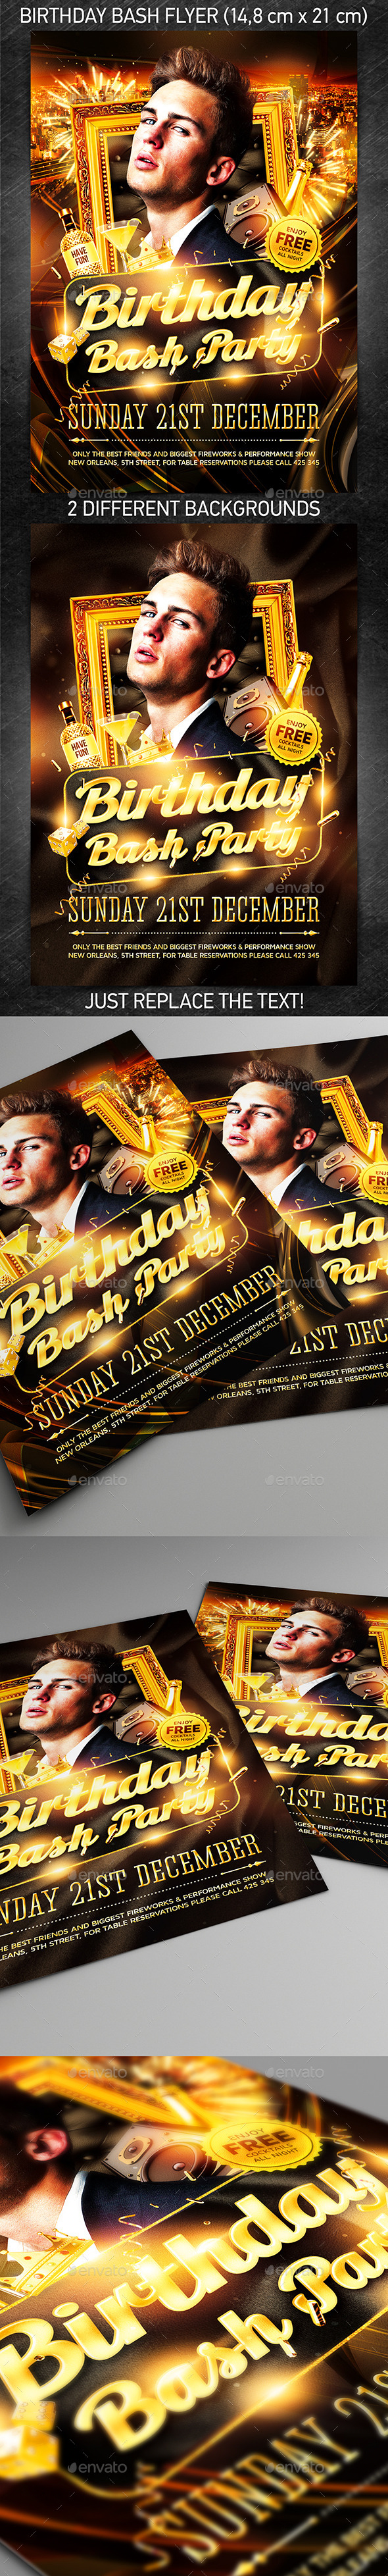 GraphicRiver Birthday Bash Party Flyer 9785203